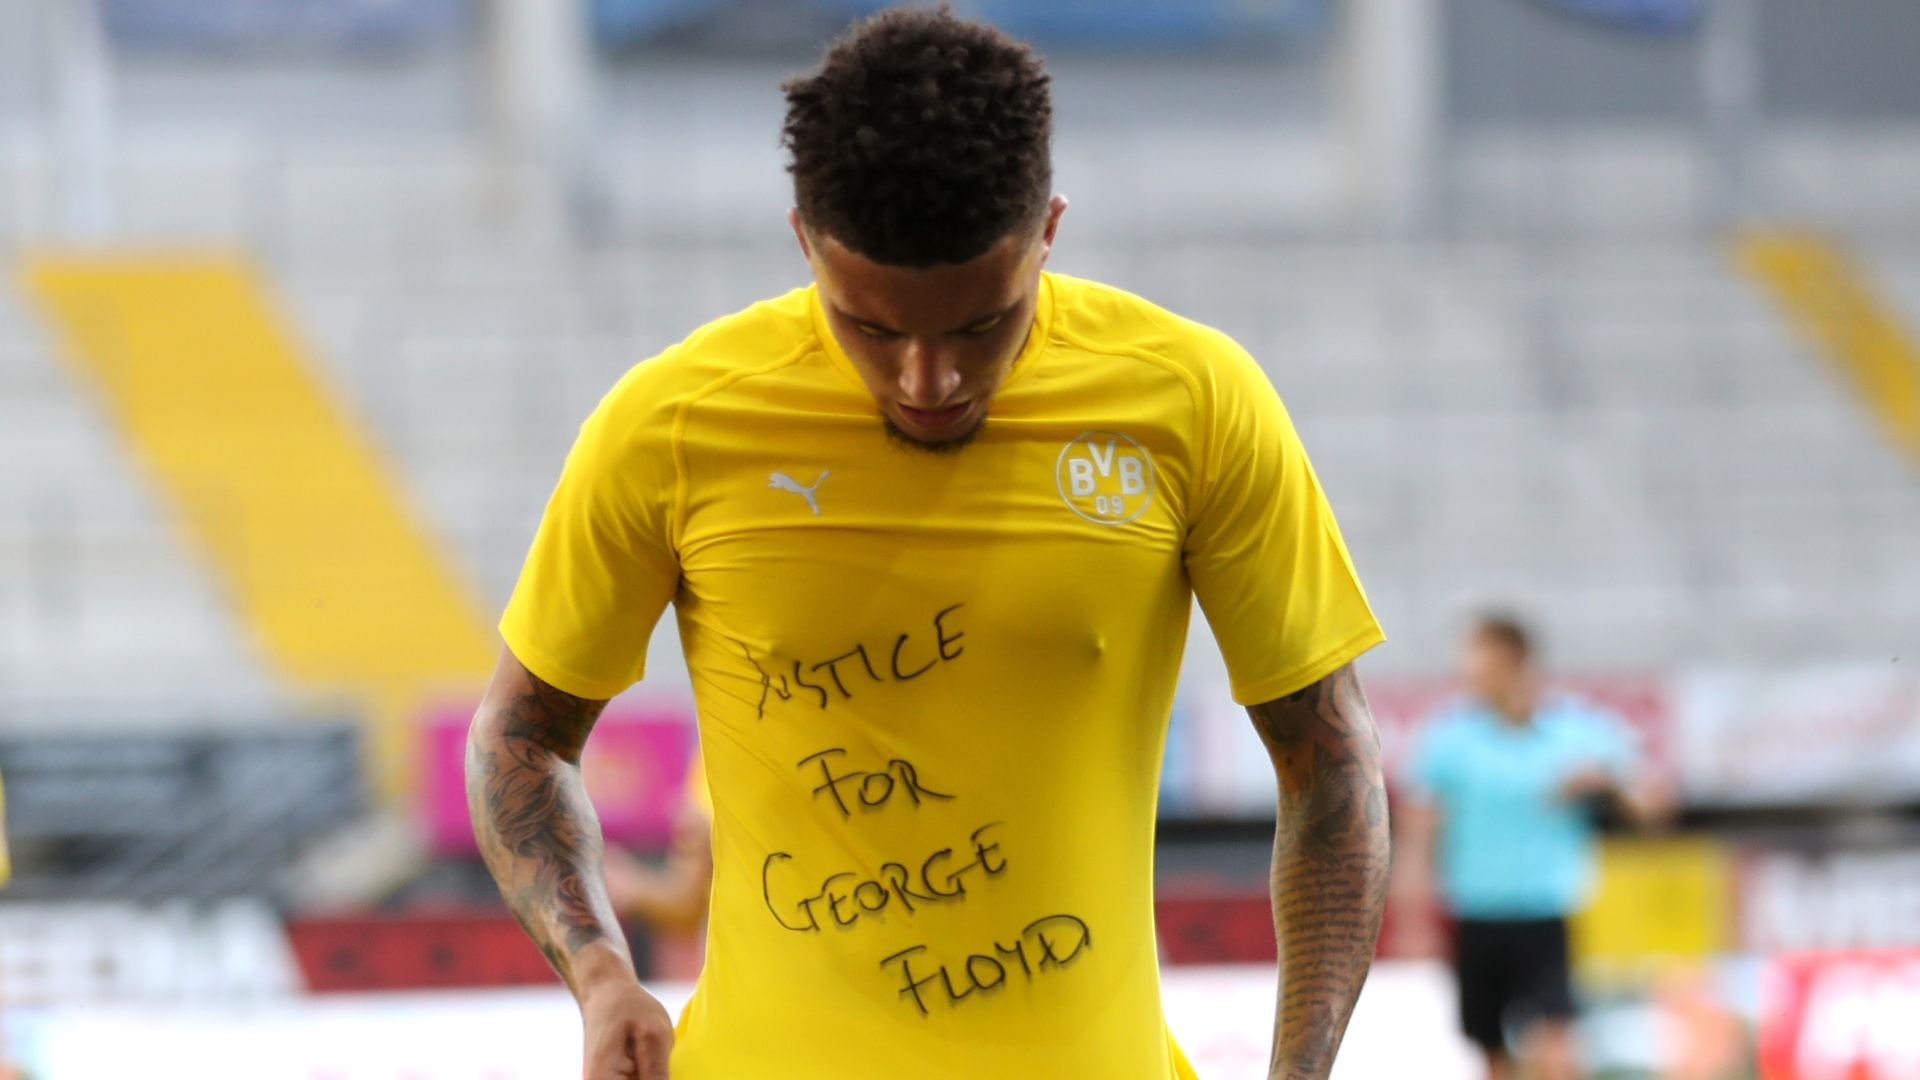 No action against Sancho for George Floyd message